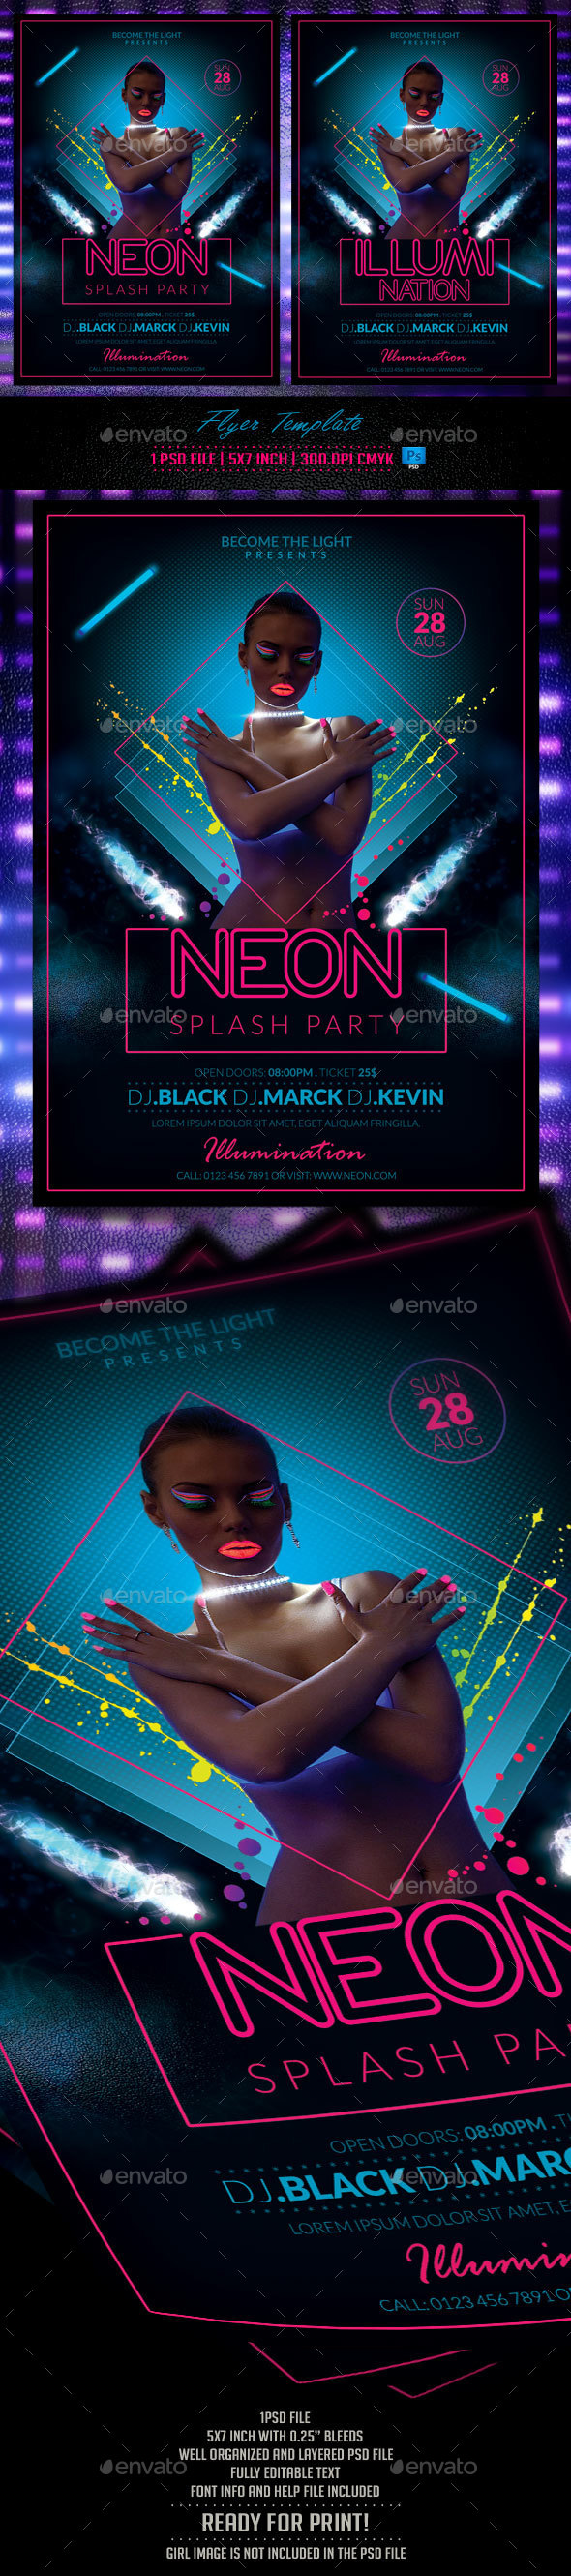 Neon Party Flyer Template - Flyers Print Templates